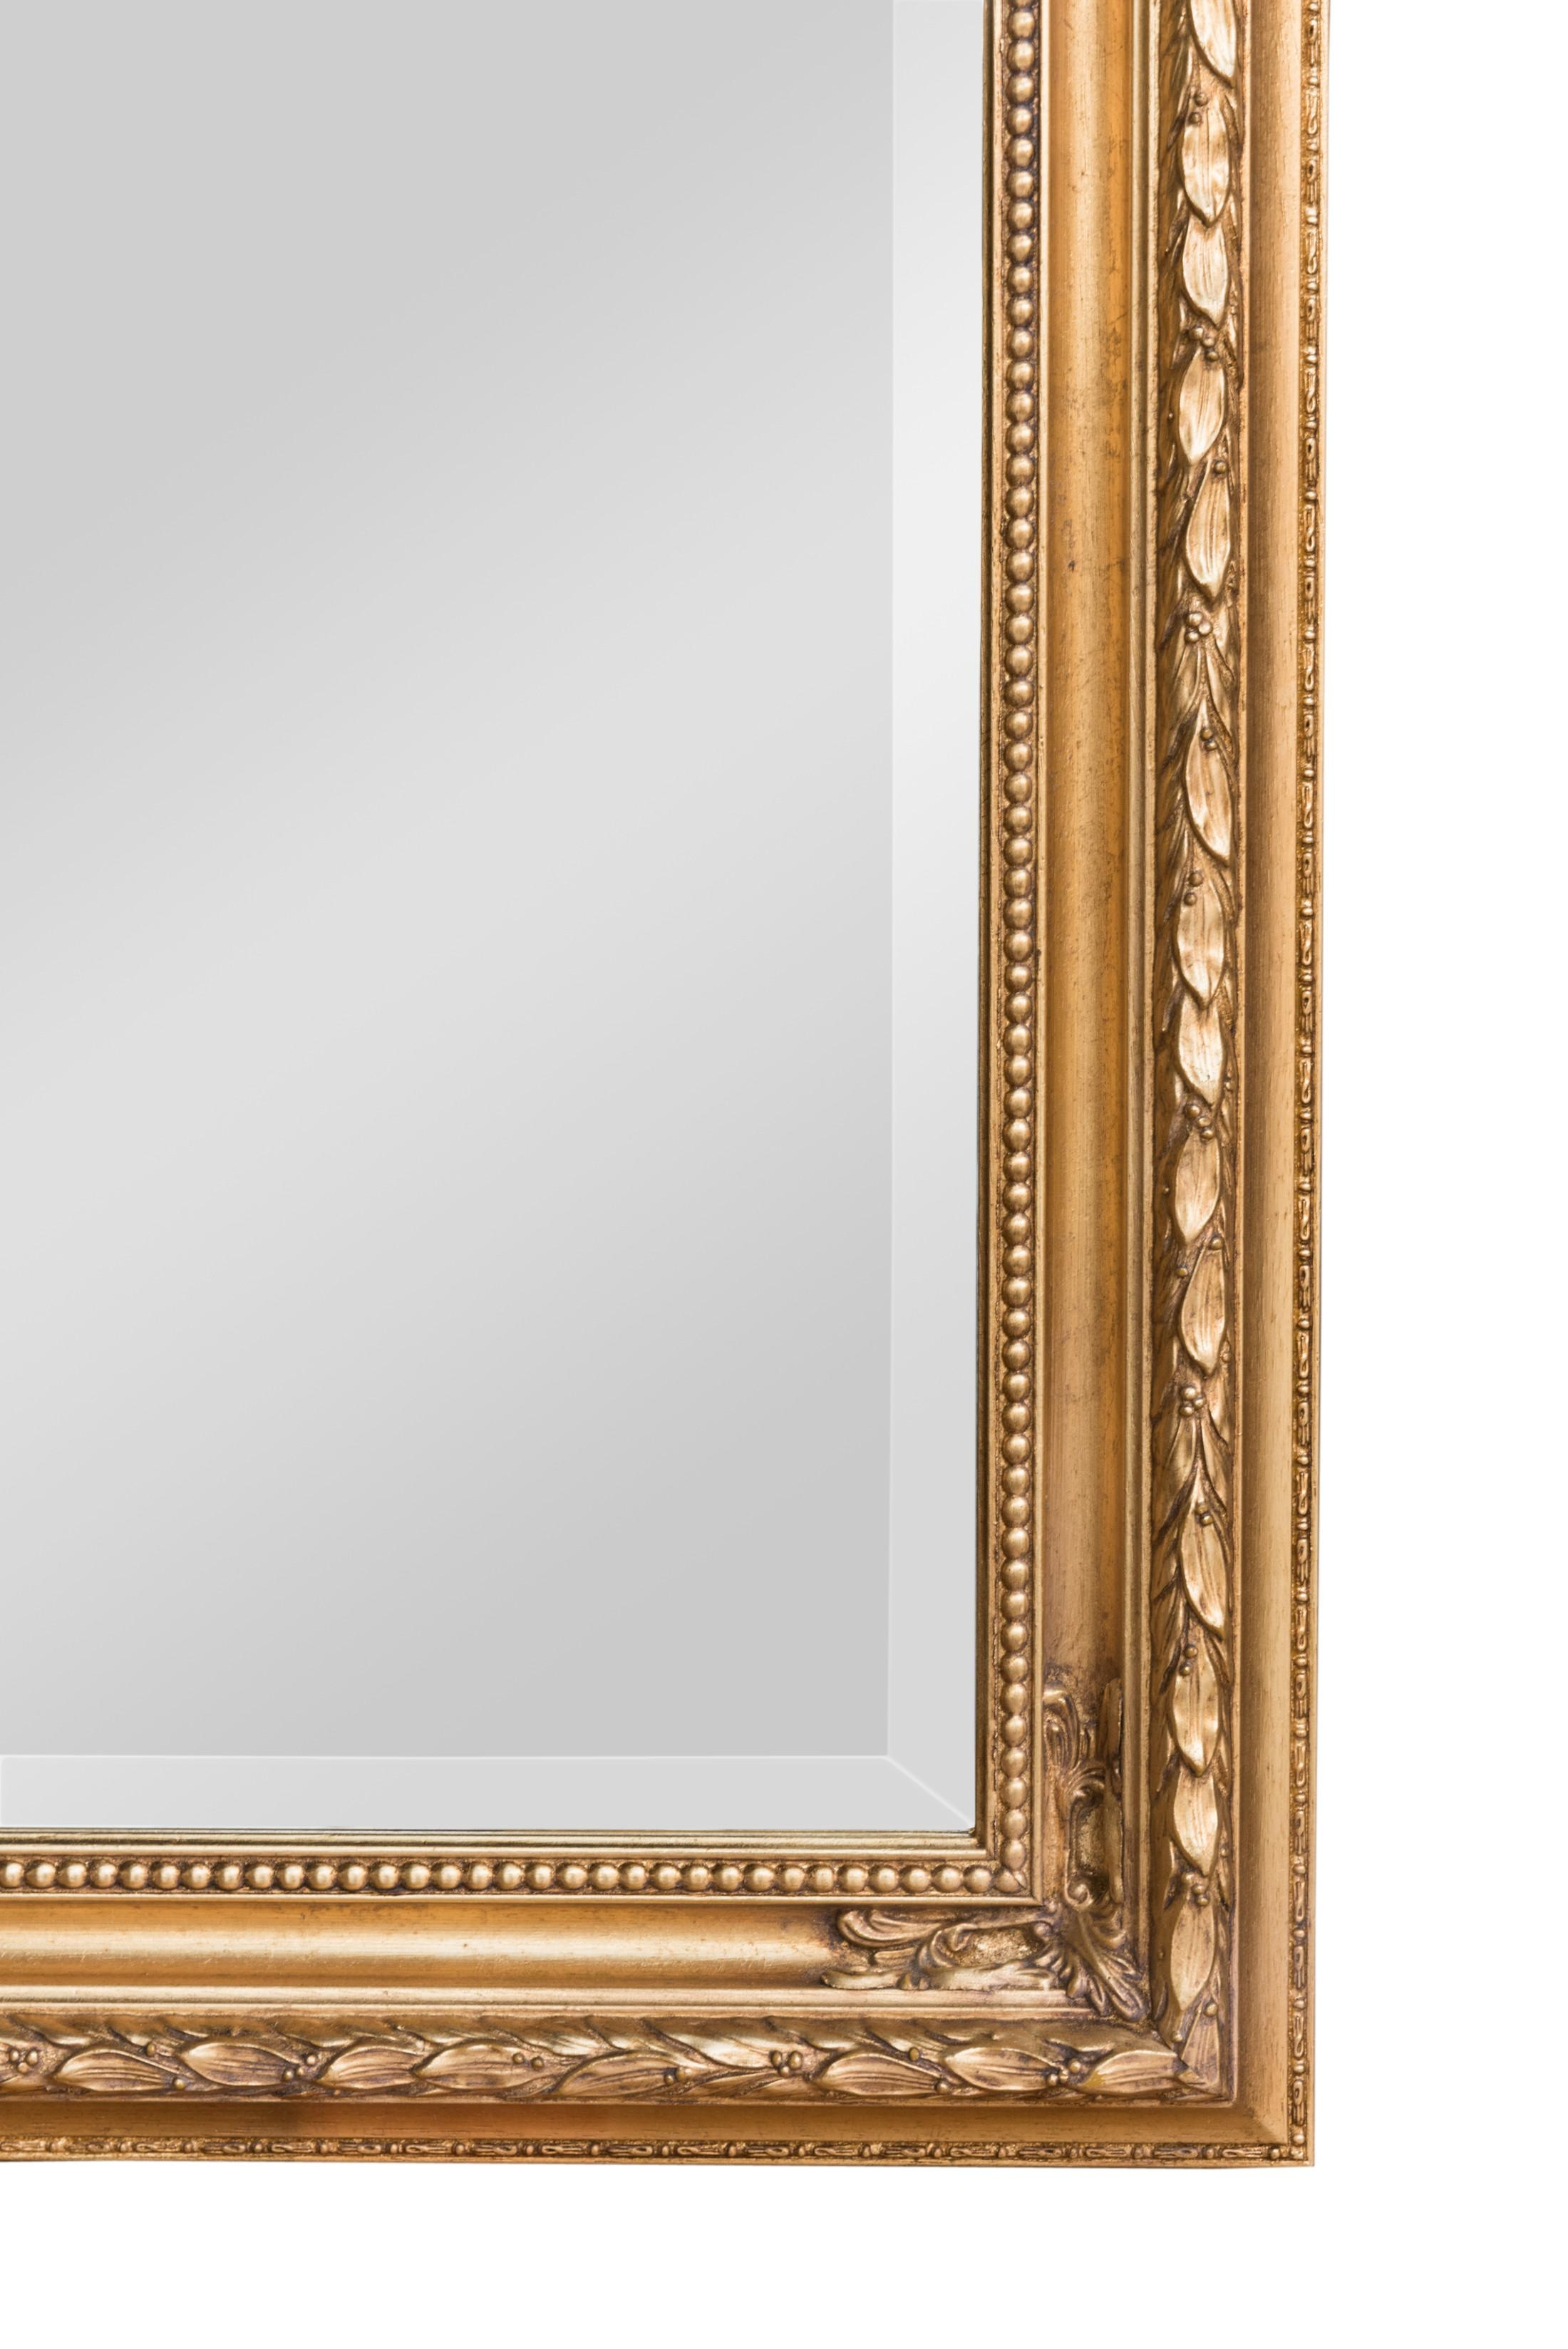 Gold Baroque Mirror | Bedroom Mirrors For Sale – Panfili Mirrors Throughout Gold Baroque Mirror (Image 17 of 20)